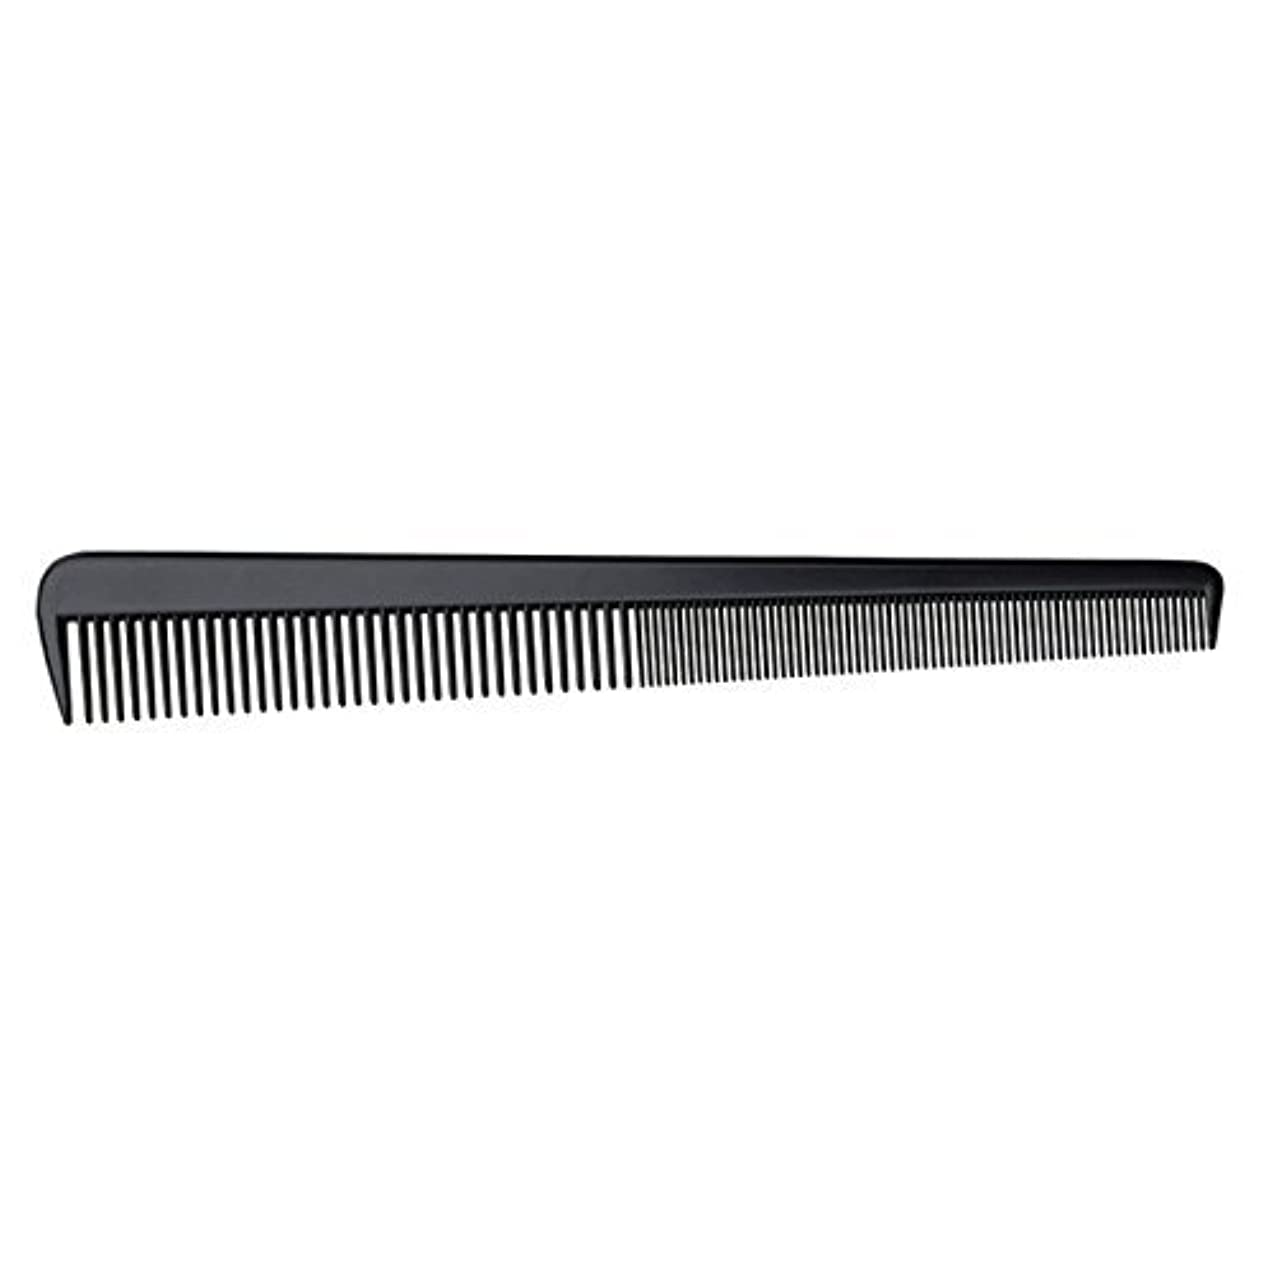 Diane Barber Comb 12 count 7-1/2 Inch [並行輸入品]